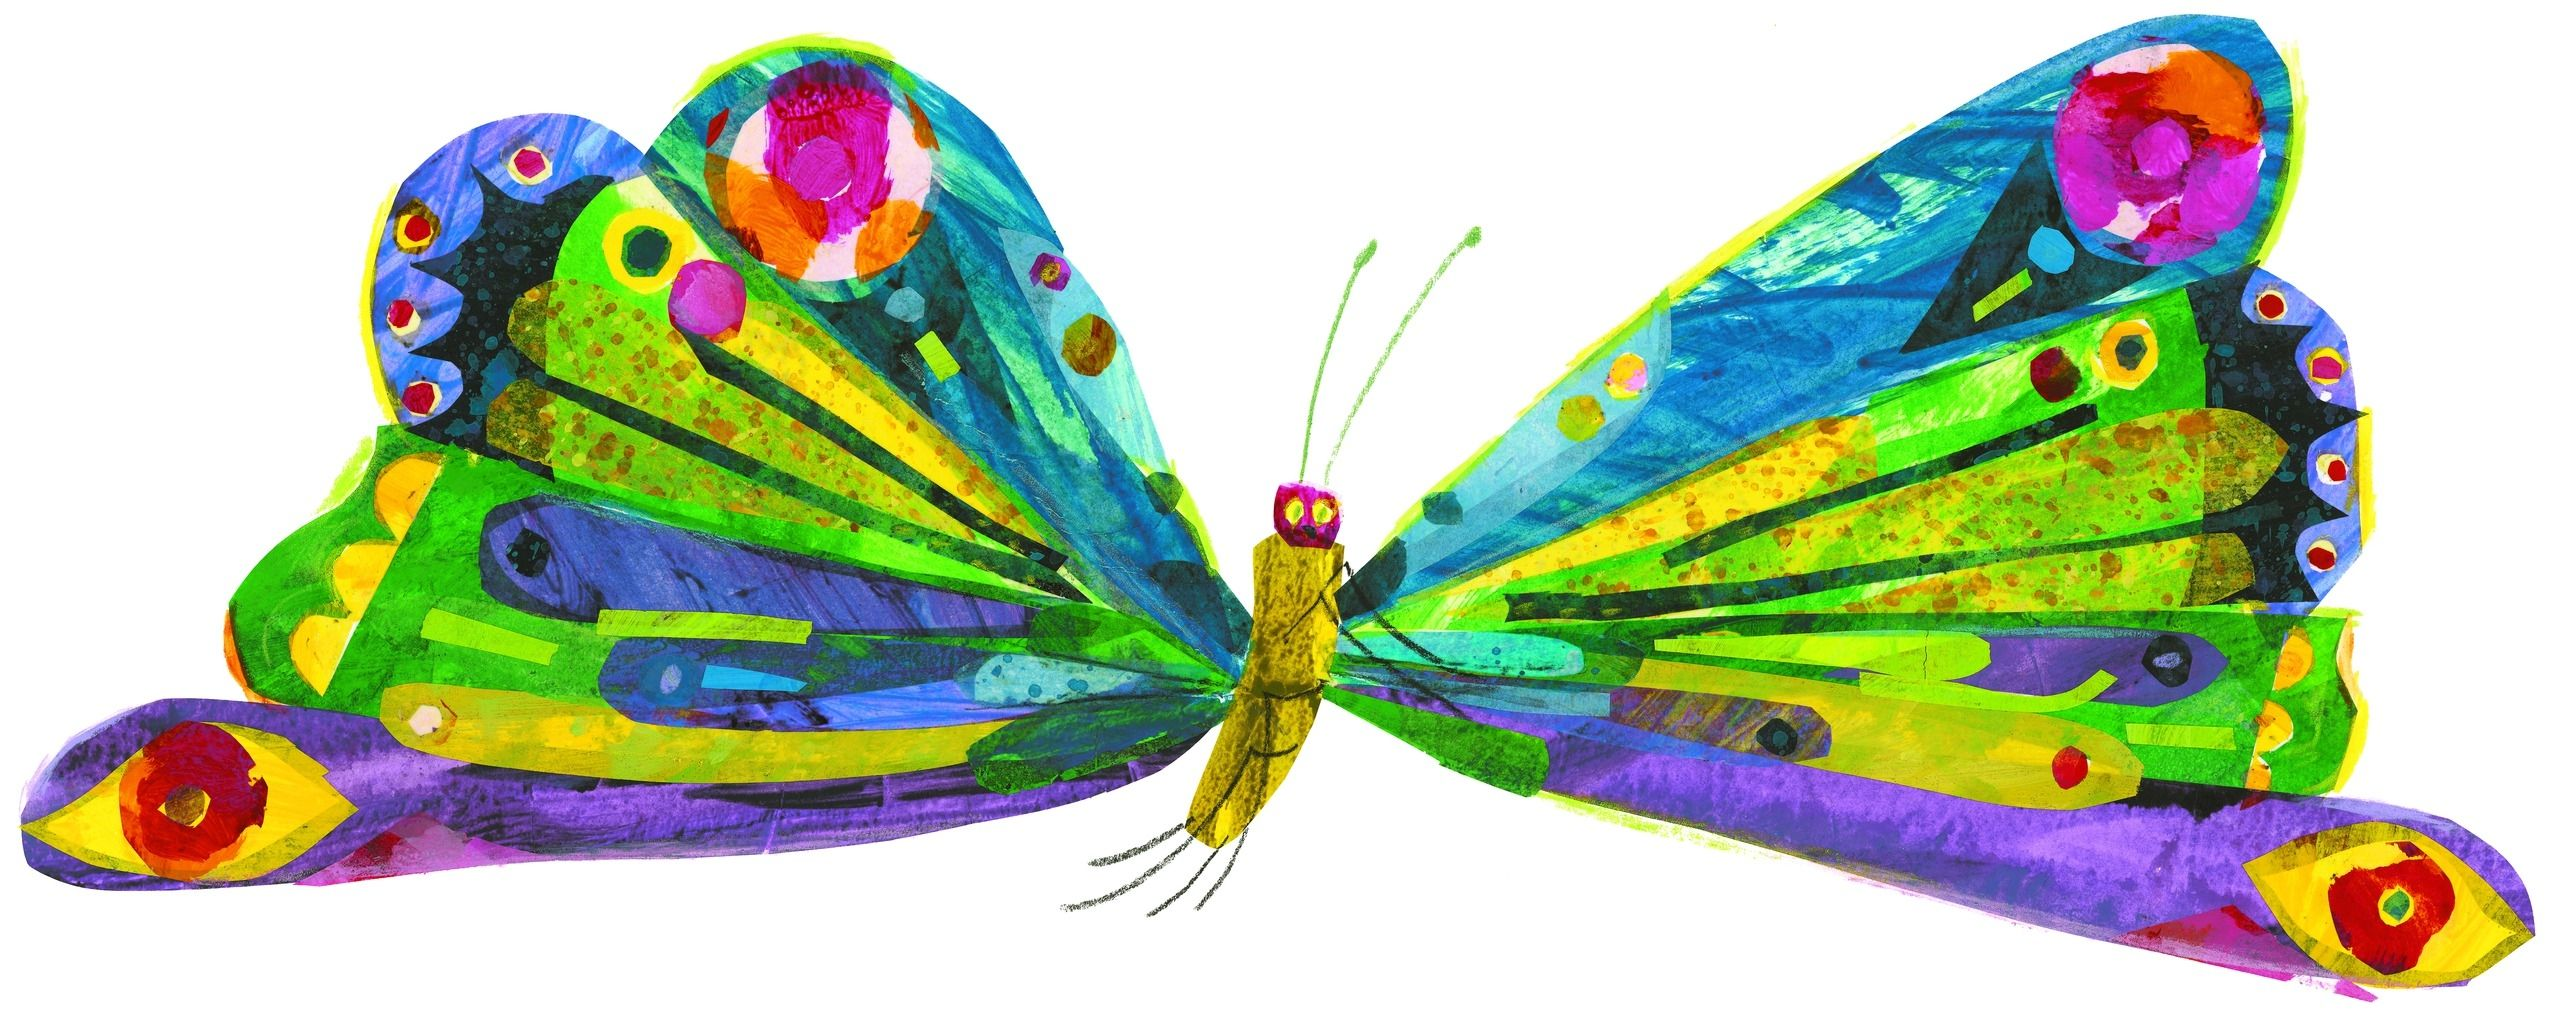 hight resolution of very hungry caterpillar butterfly clipart free clipart